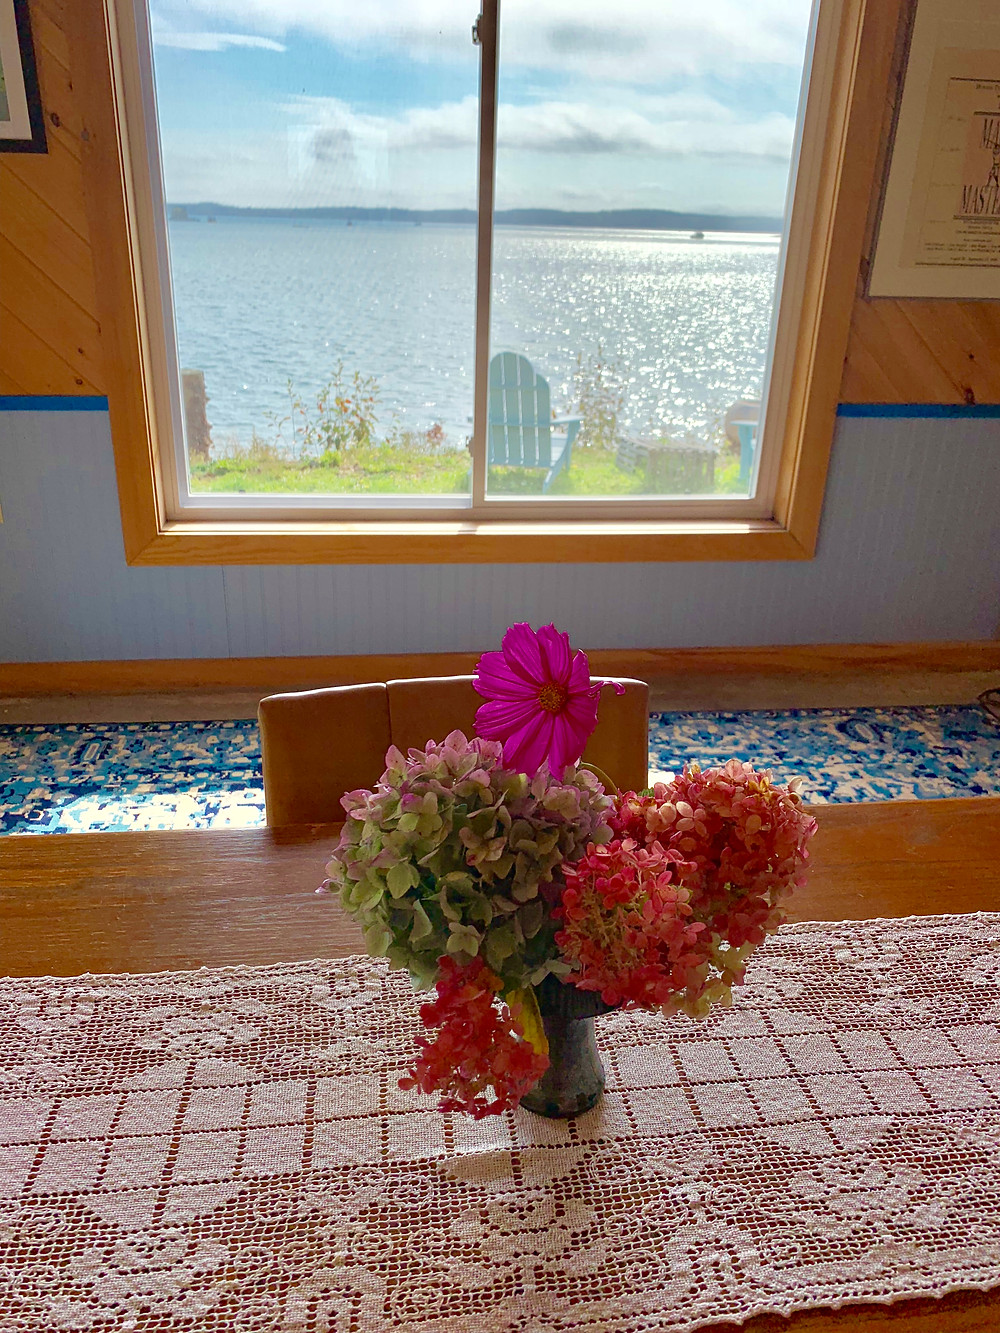 This is one of the beautiful cottages at Rossport By the Sea Lodging and Retreats.